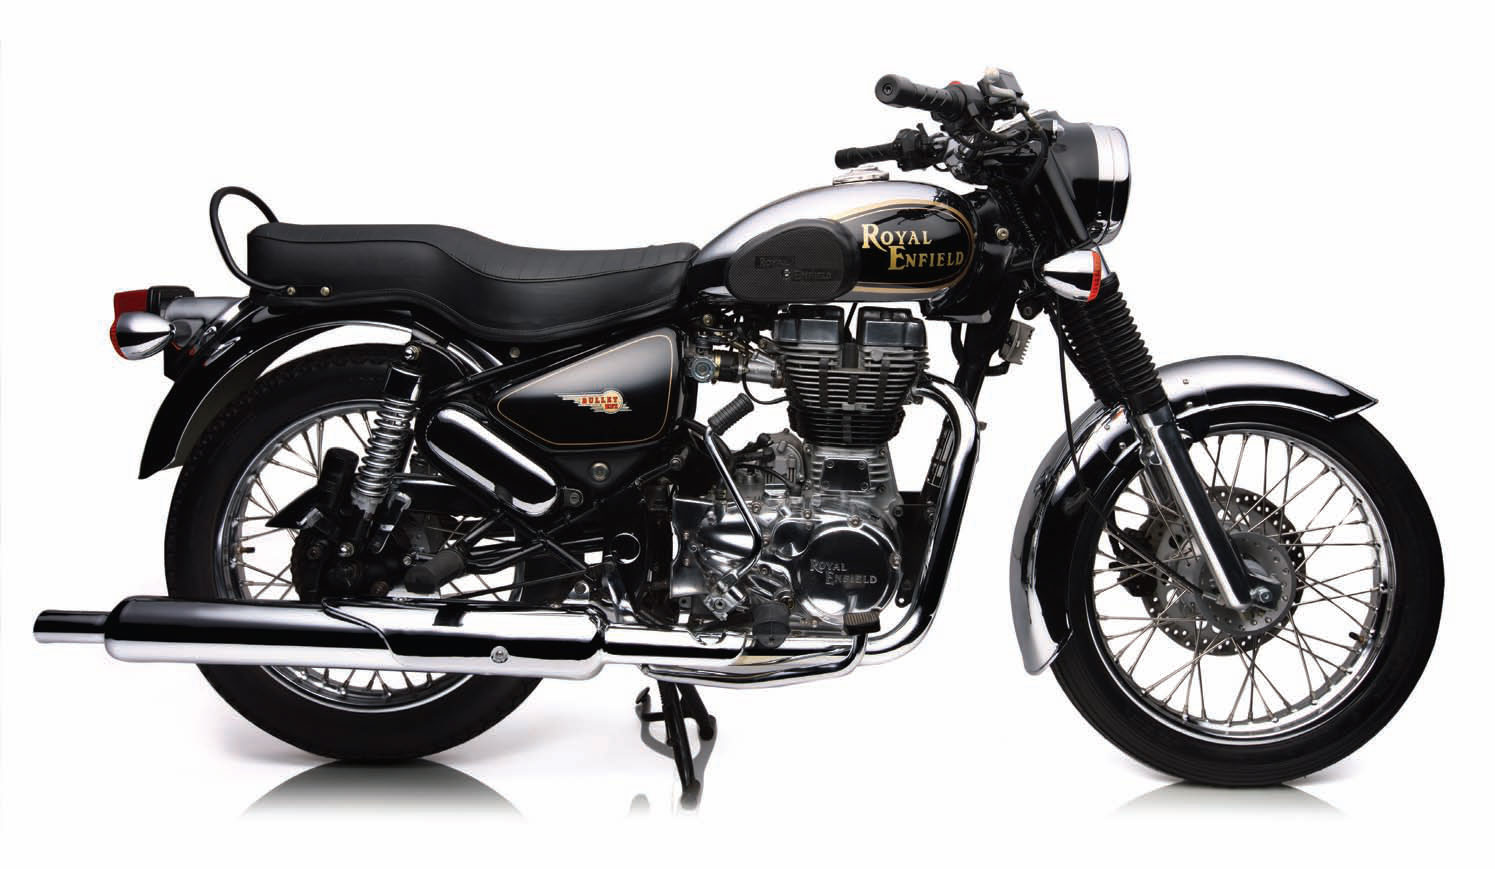 Enfield Bullet G5 Classic EFI 2011 #1